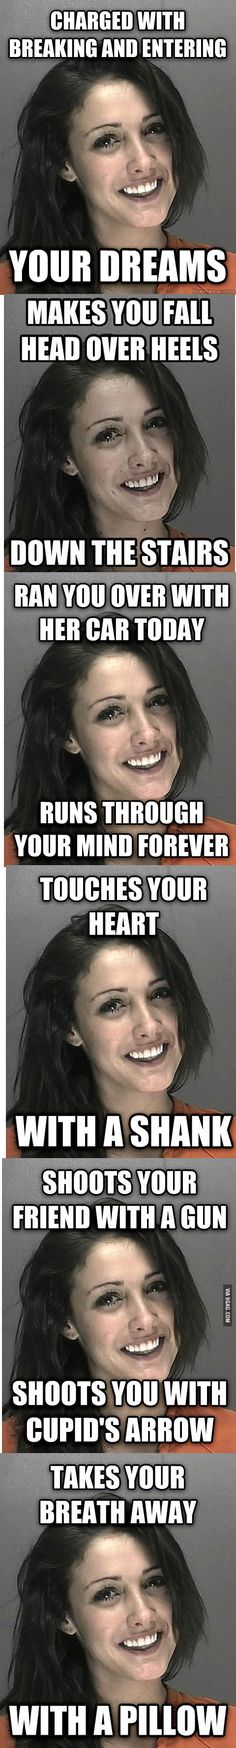 Get your daily dose of funniest pictures you will ever see Funny Images, Funny Photos, Prison Quotes, Prison Inmates, Post Date, Touching You, Dreaming Of You, Laughter, Funny Stuff